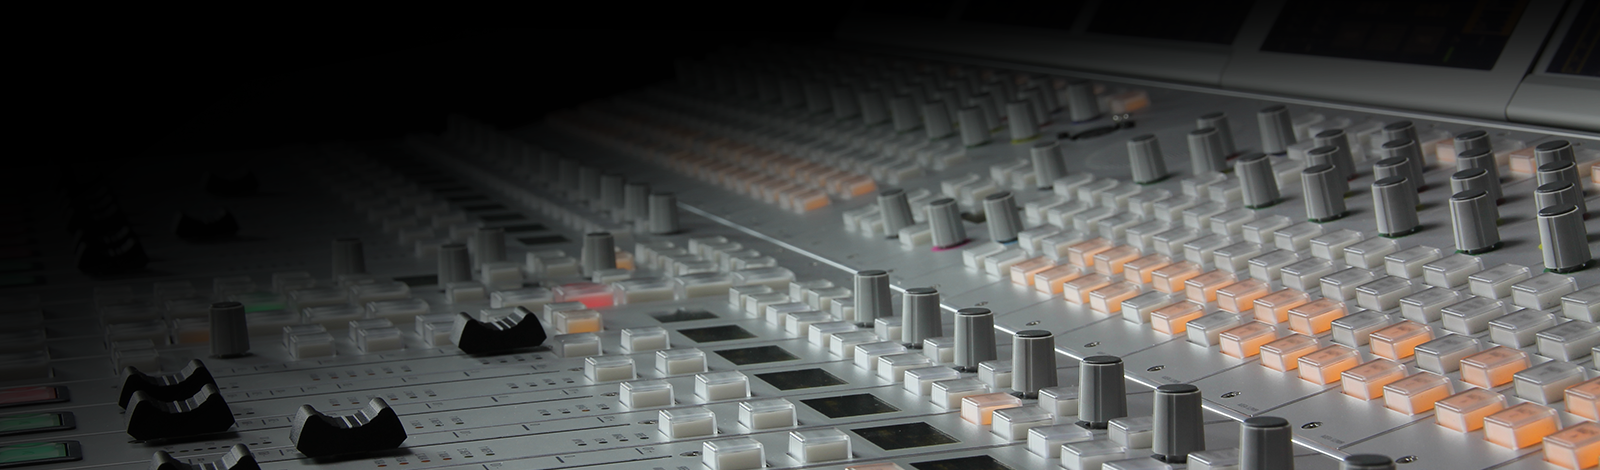 DHD broadcast mixing consoles